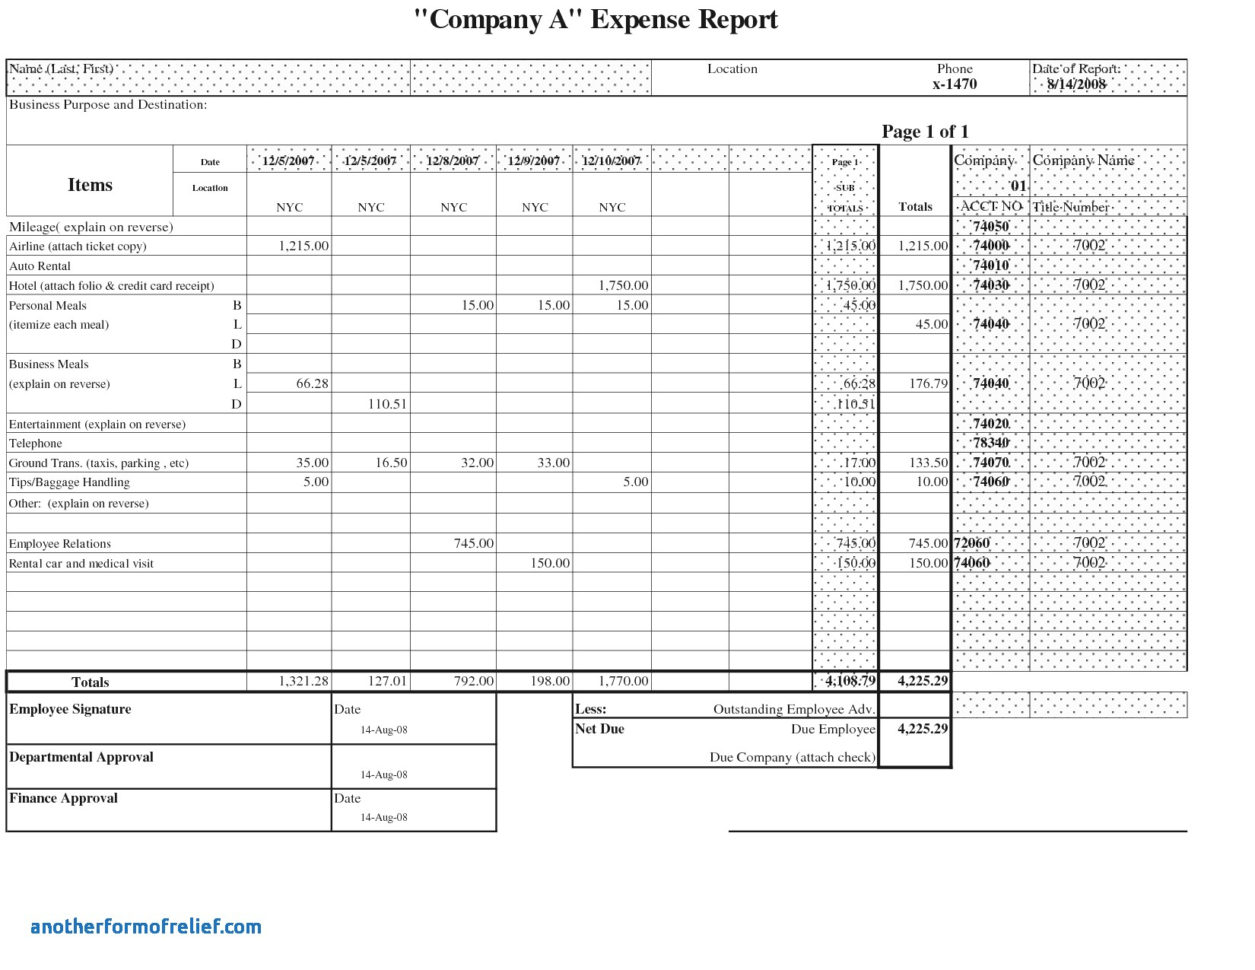 Microsoft Word Expense Report Template New Expense Report Template Inside Microsoft Expense Report Template